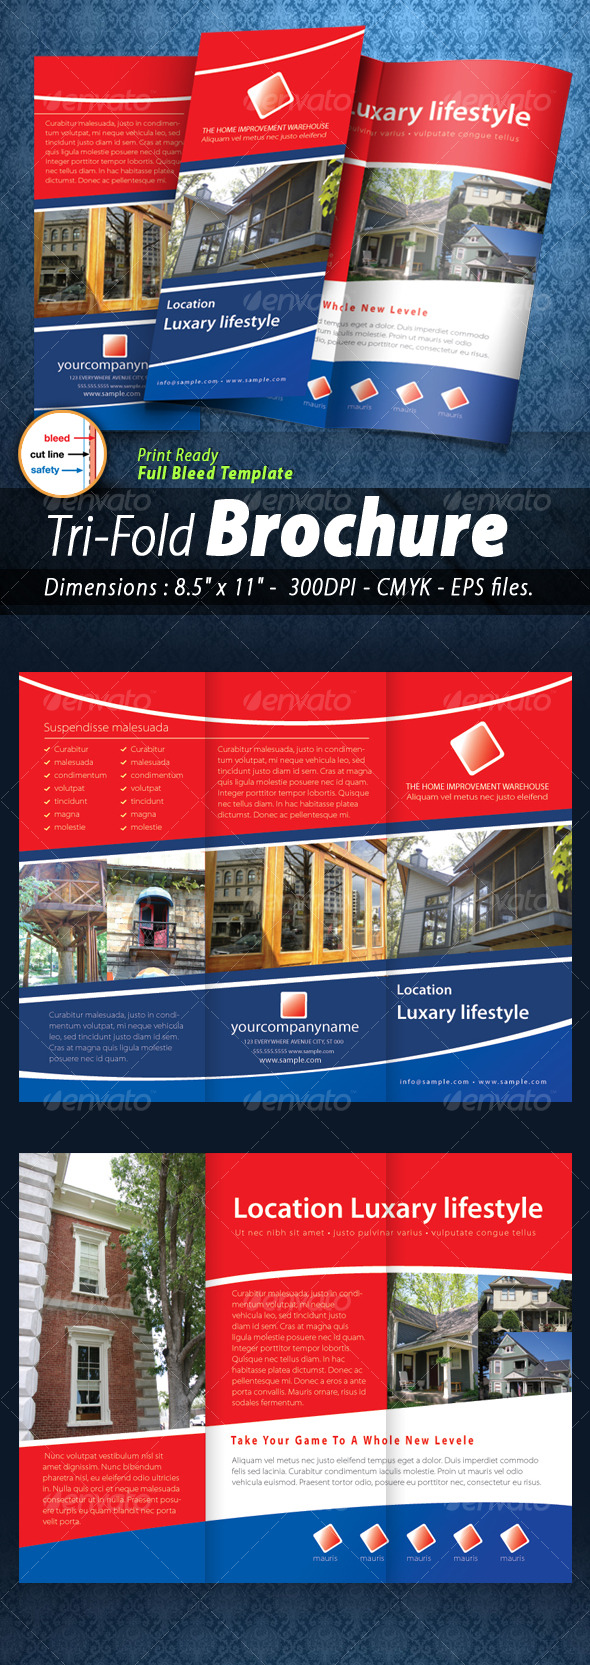 Tri-fold Brochure [Print ready] - Corporate Brochures